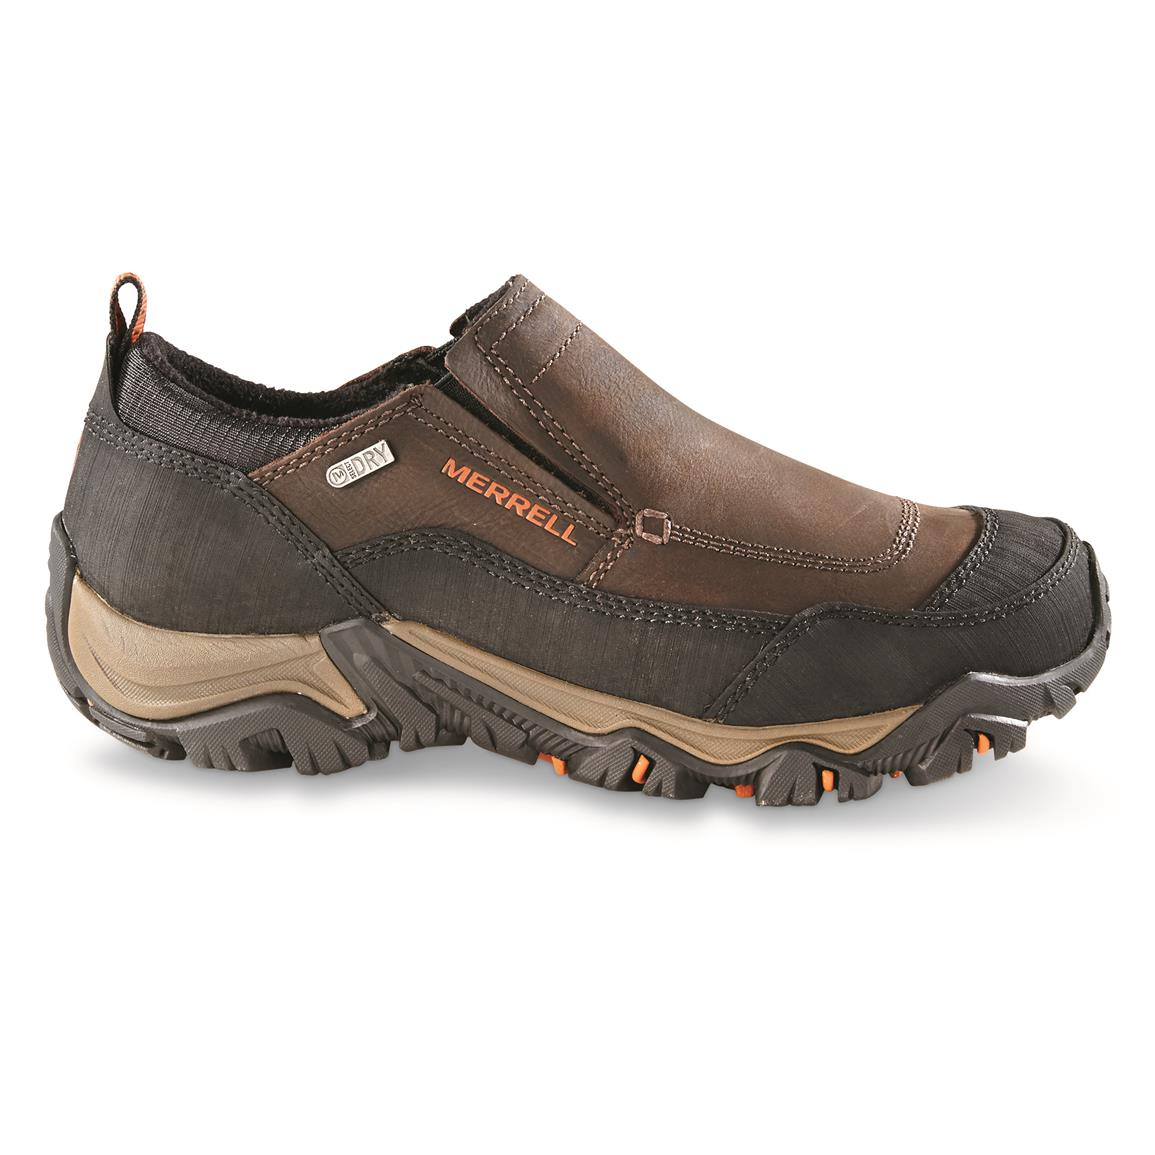 Merrell Polarand Rove Waterproof Moc Toe Slip-on Shoes, Right